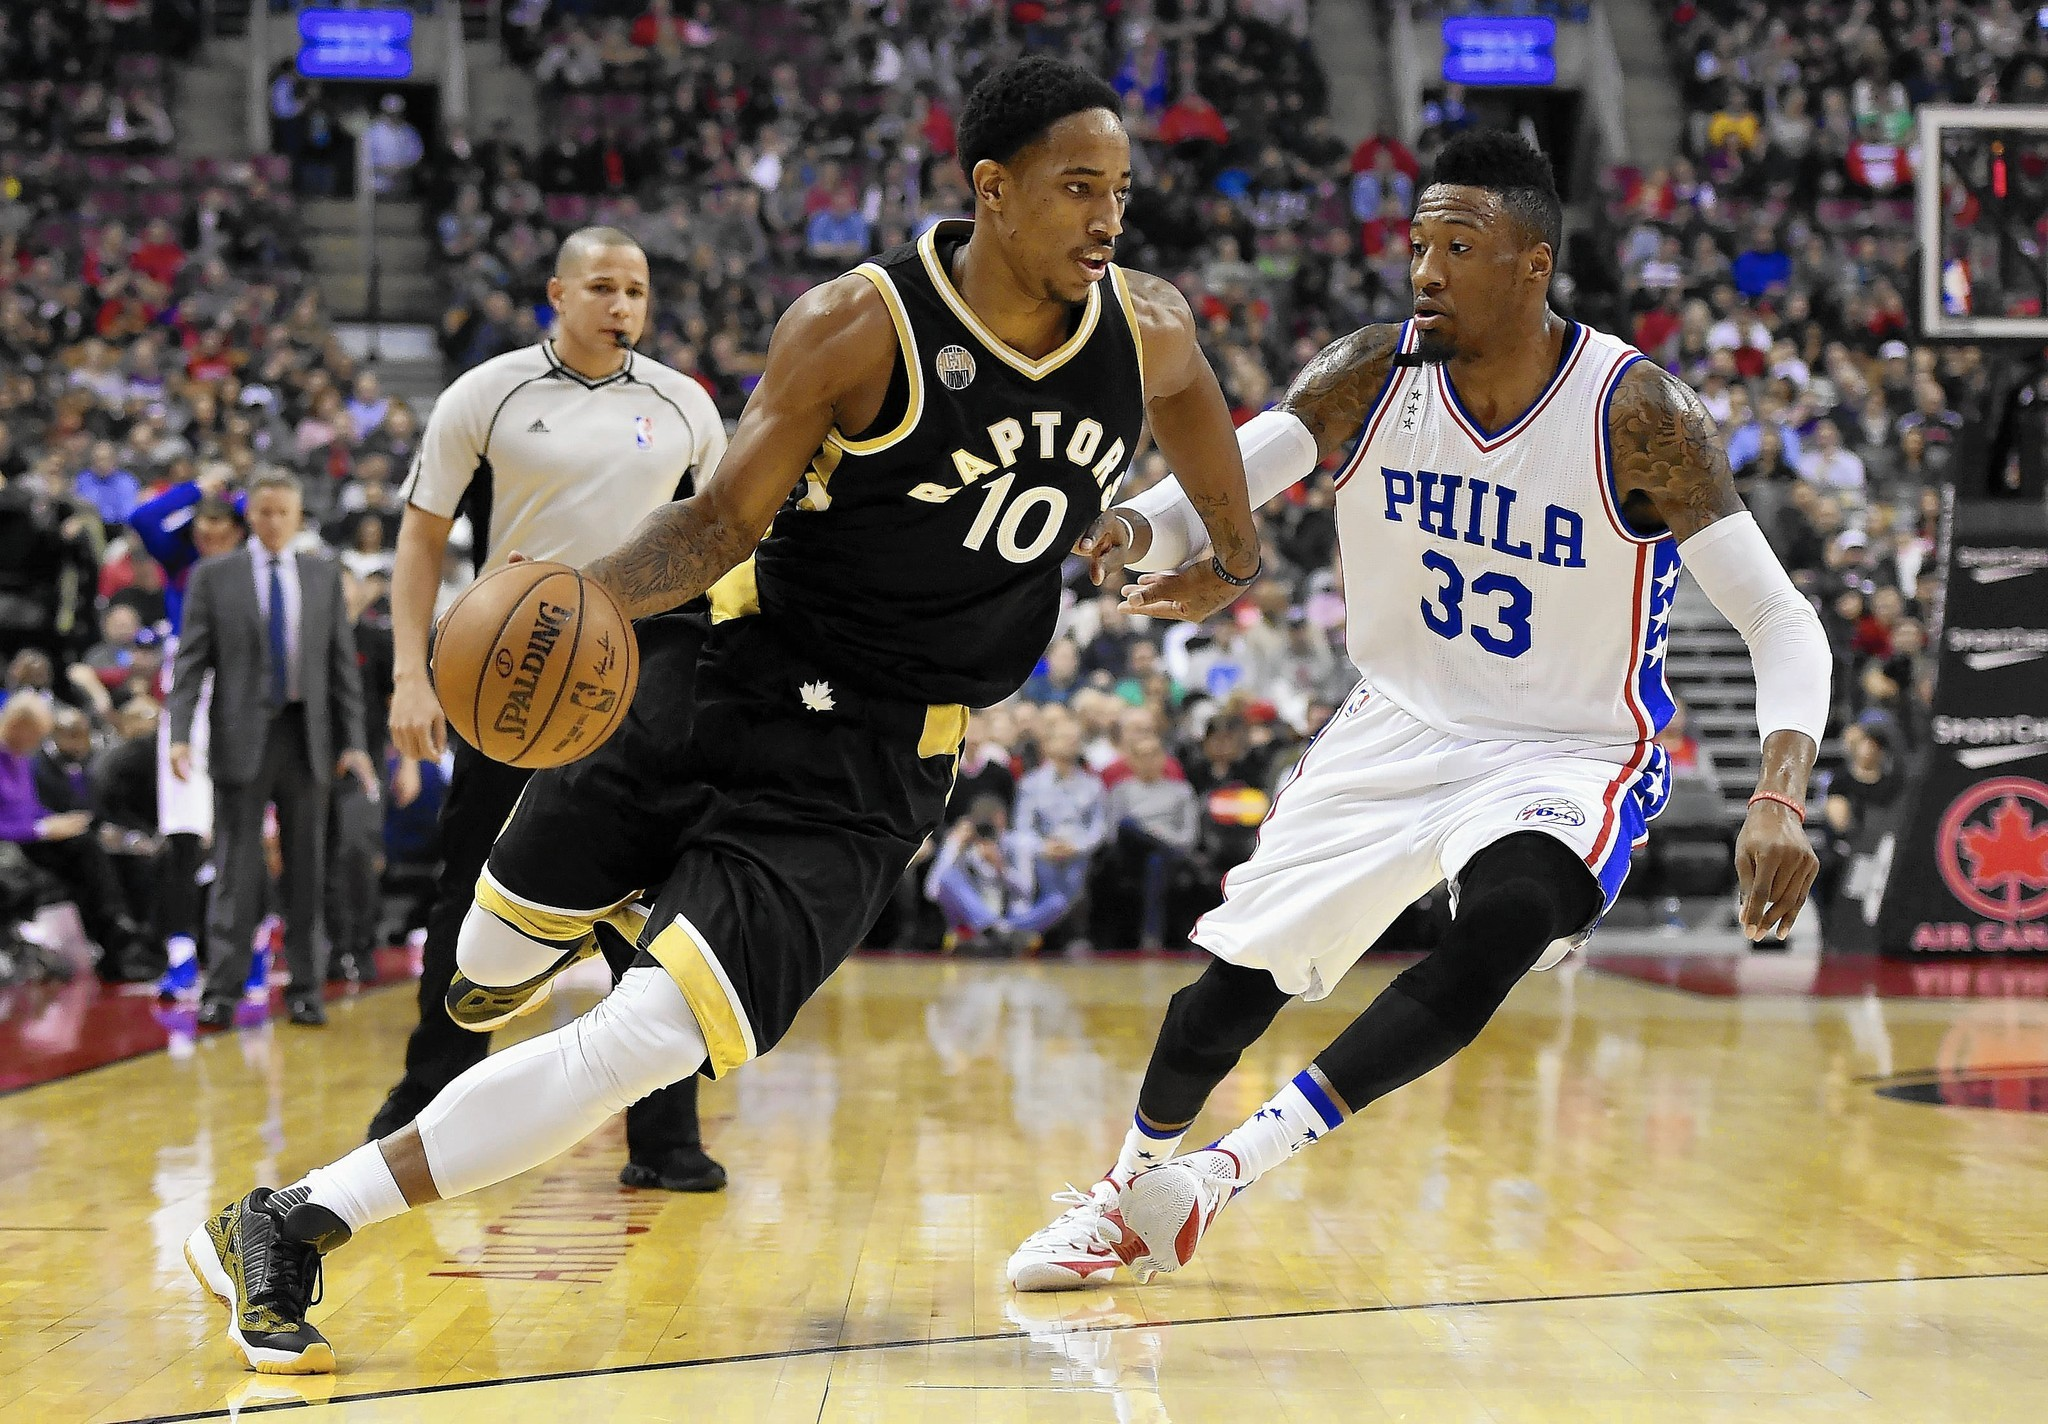 Raptors cruise past 76ers 96-76 - The Morning Call fa7a3e561